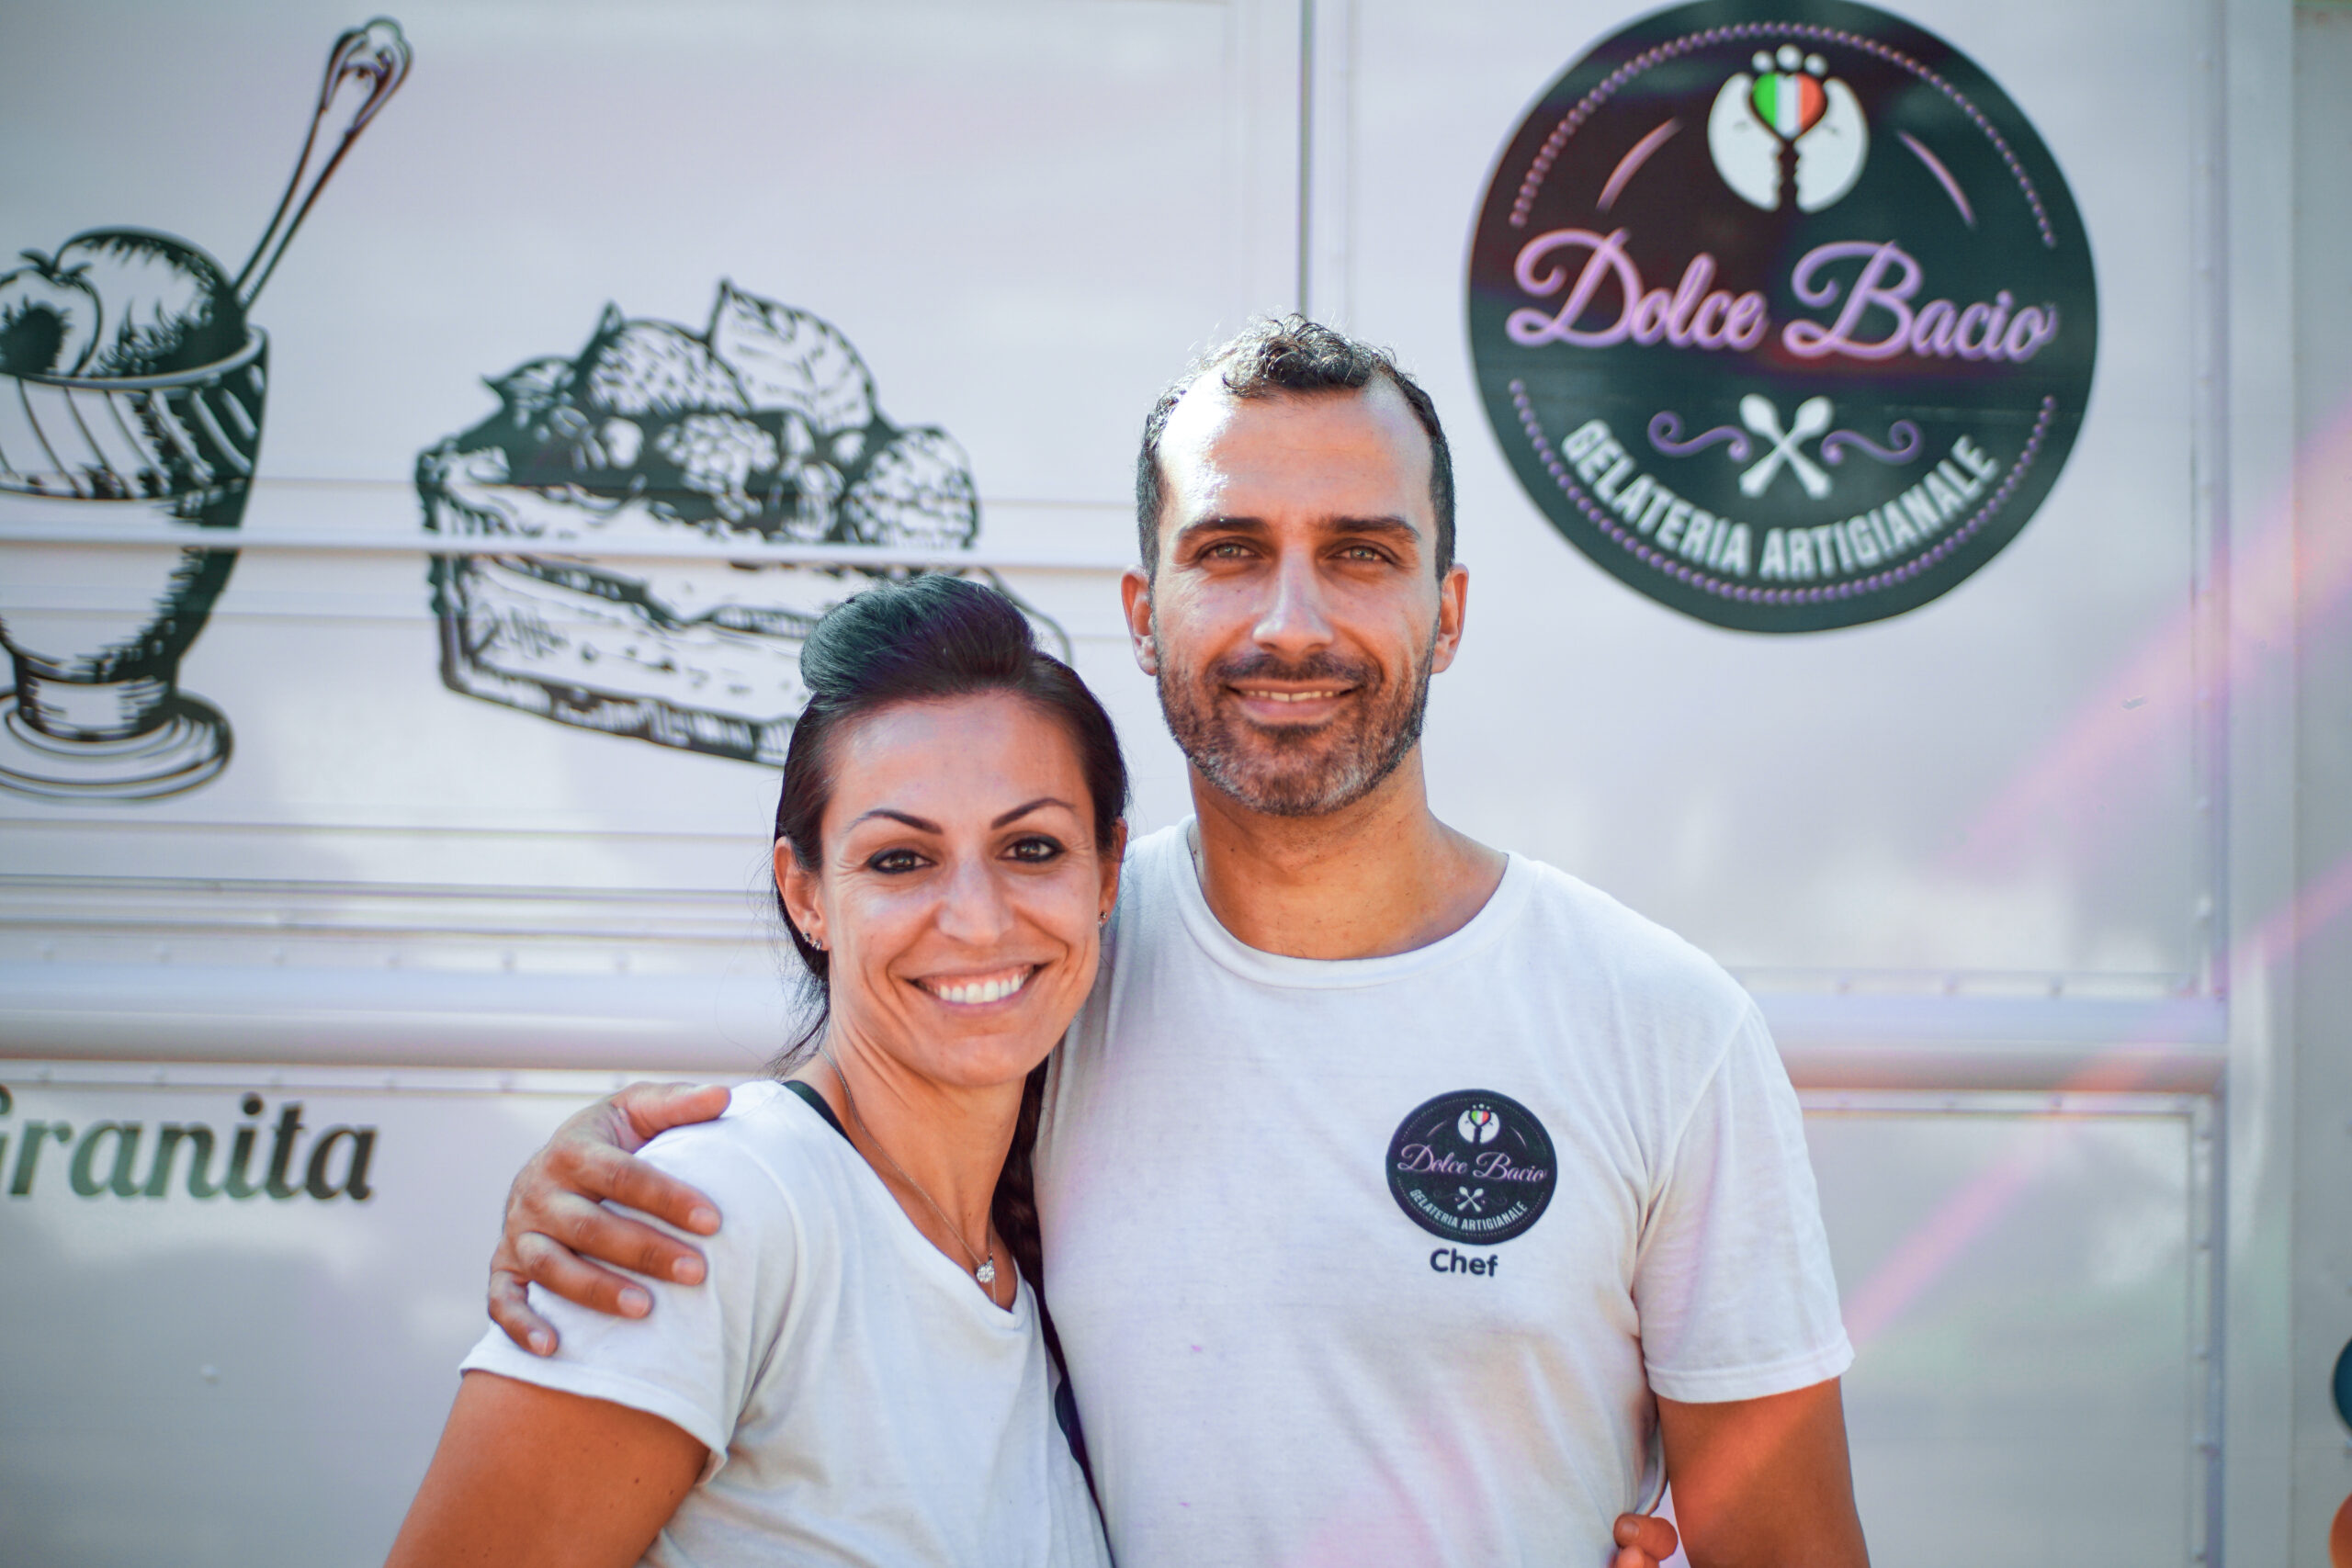 Dolce Bacio Gelato Owners in Austin TX